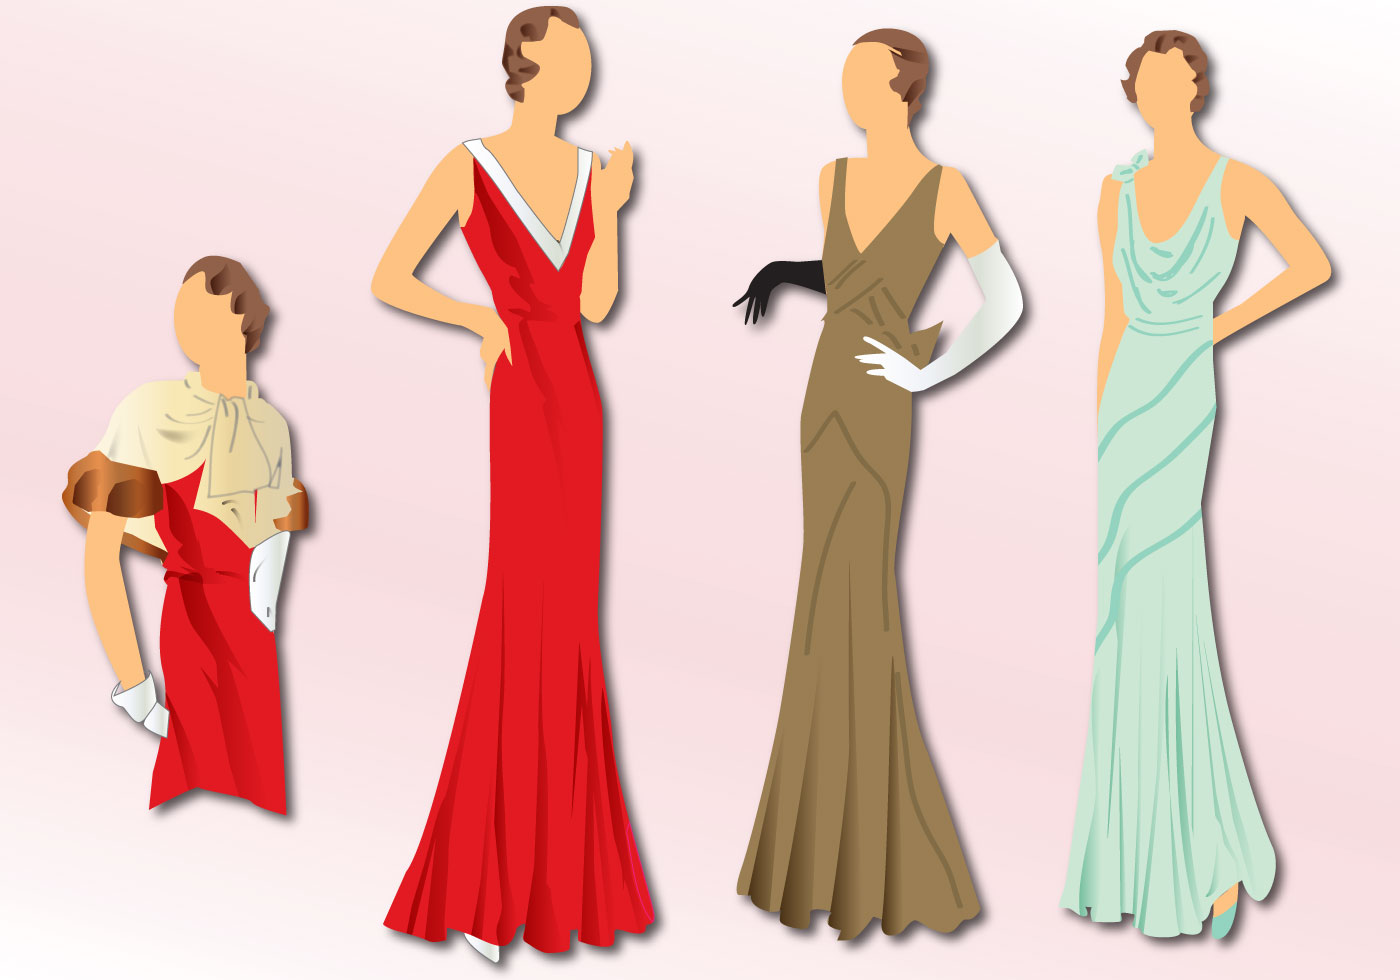 1930 s fashion clipart image free stock Party Makeup Free Vector Art - (41 Free Downloads) image free stock